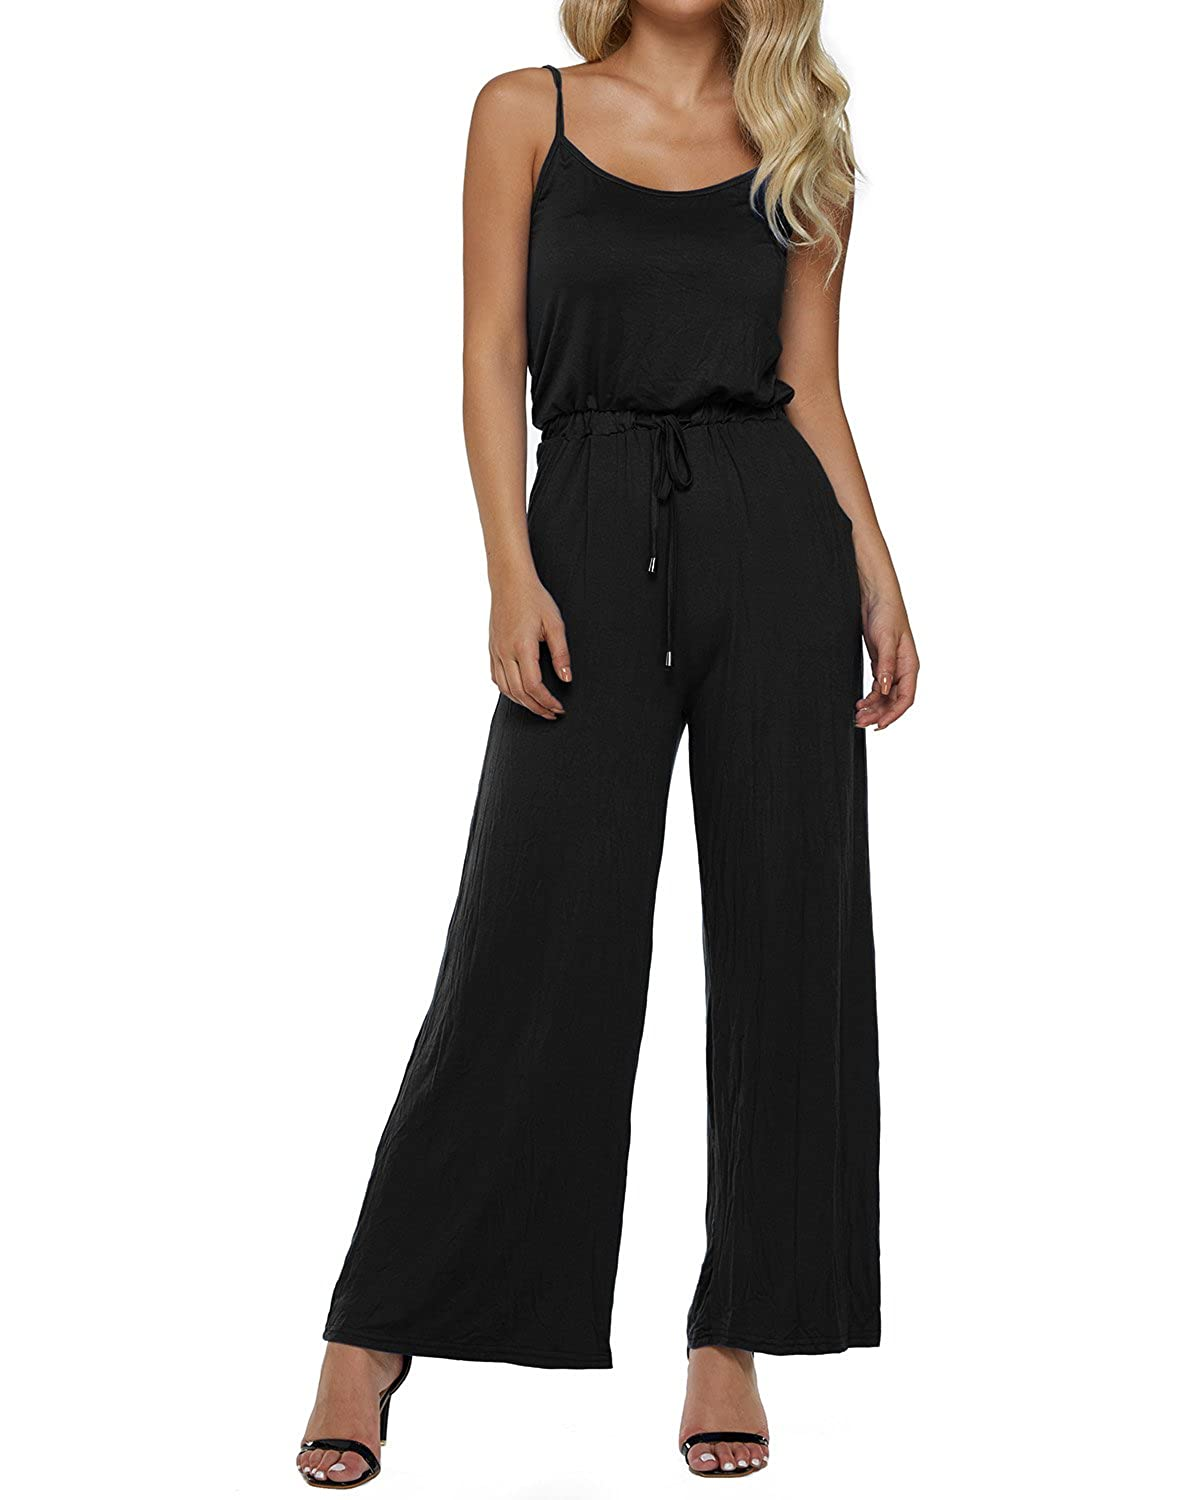 95d47d6f33ee Top 10 wholesale Black Sleeveless Jumpsuit - Chinabrands.com